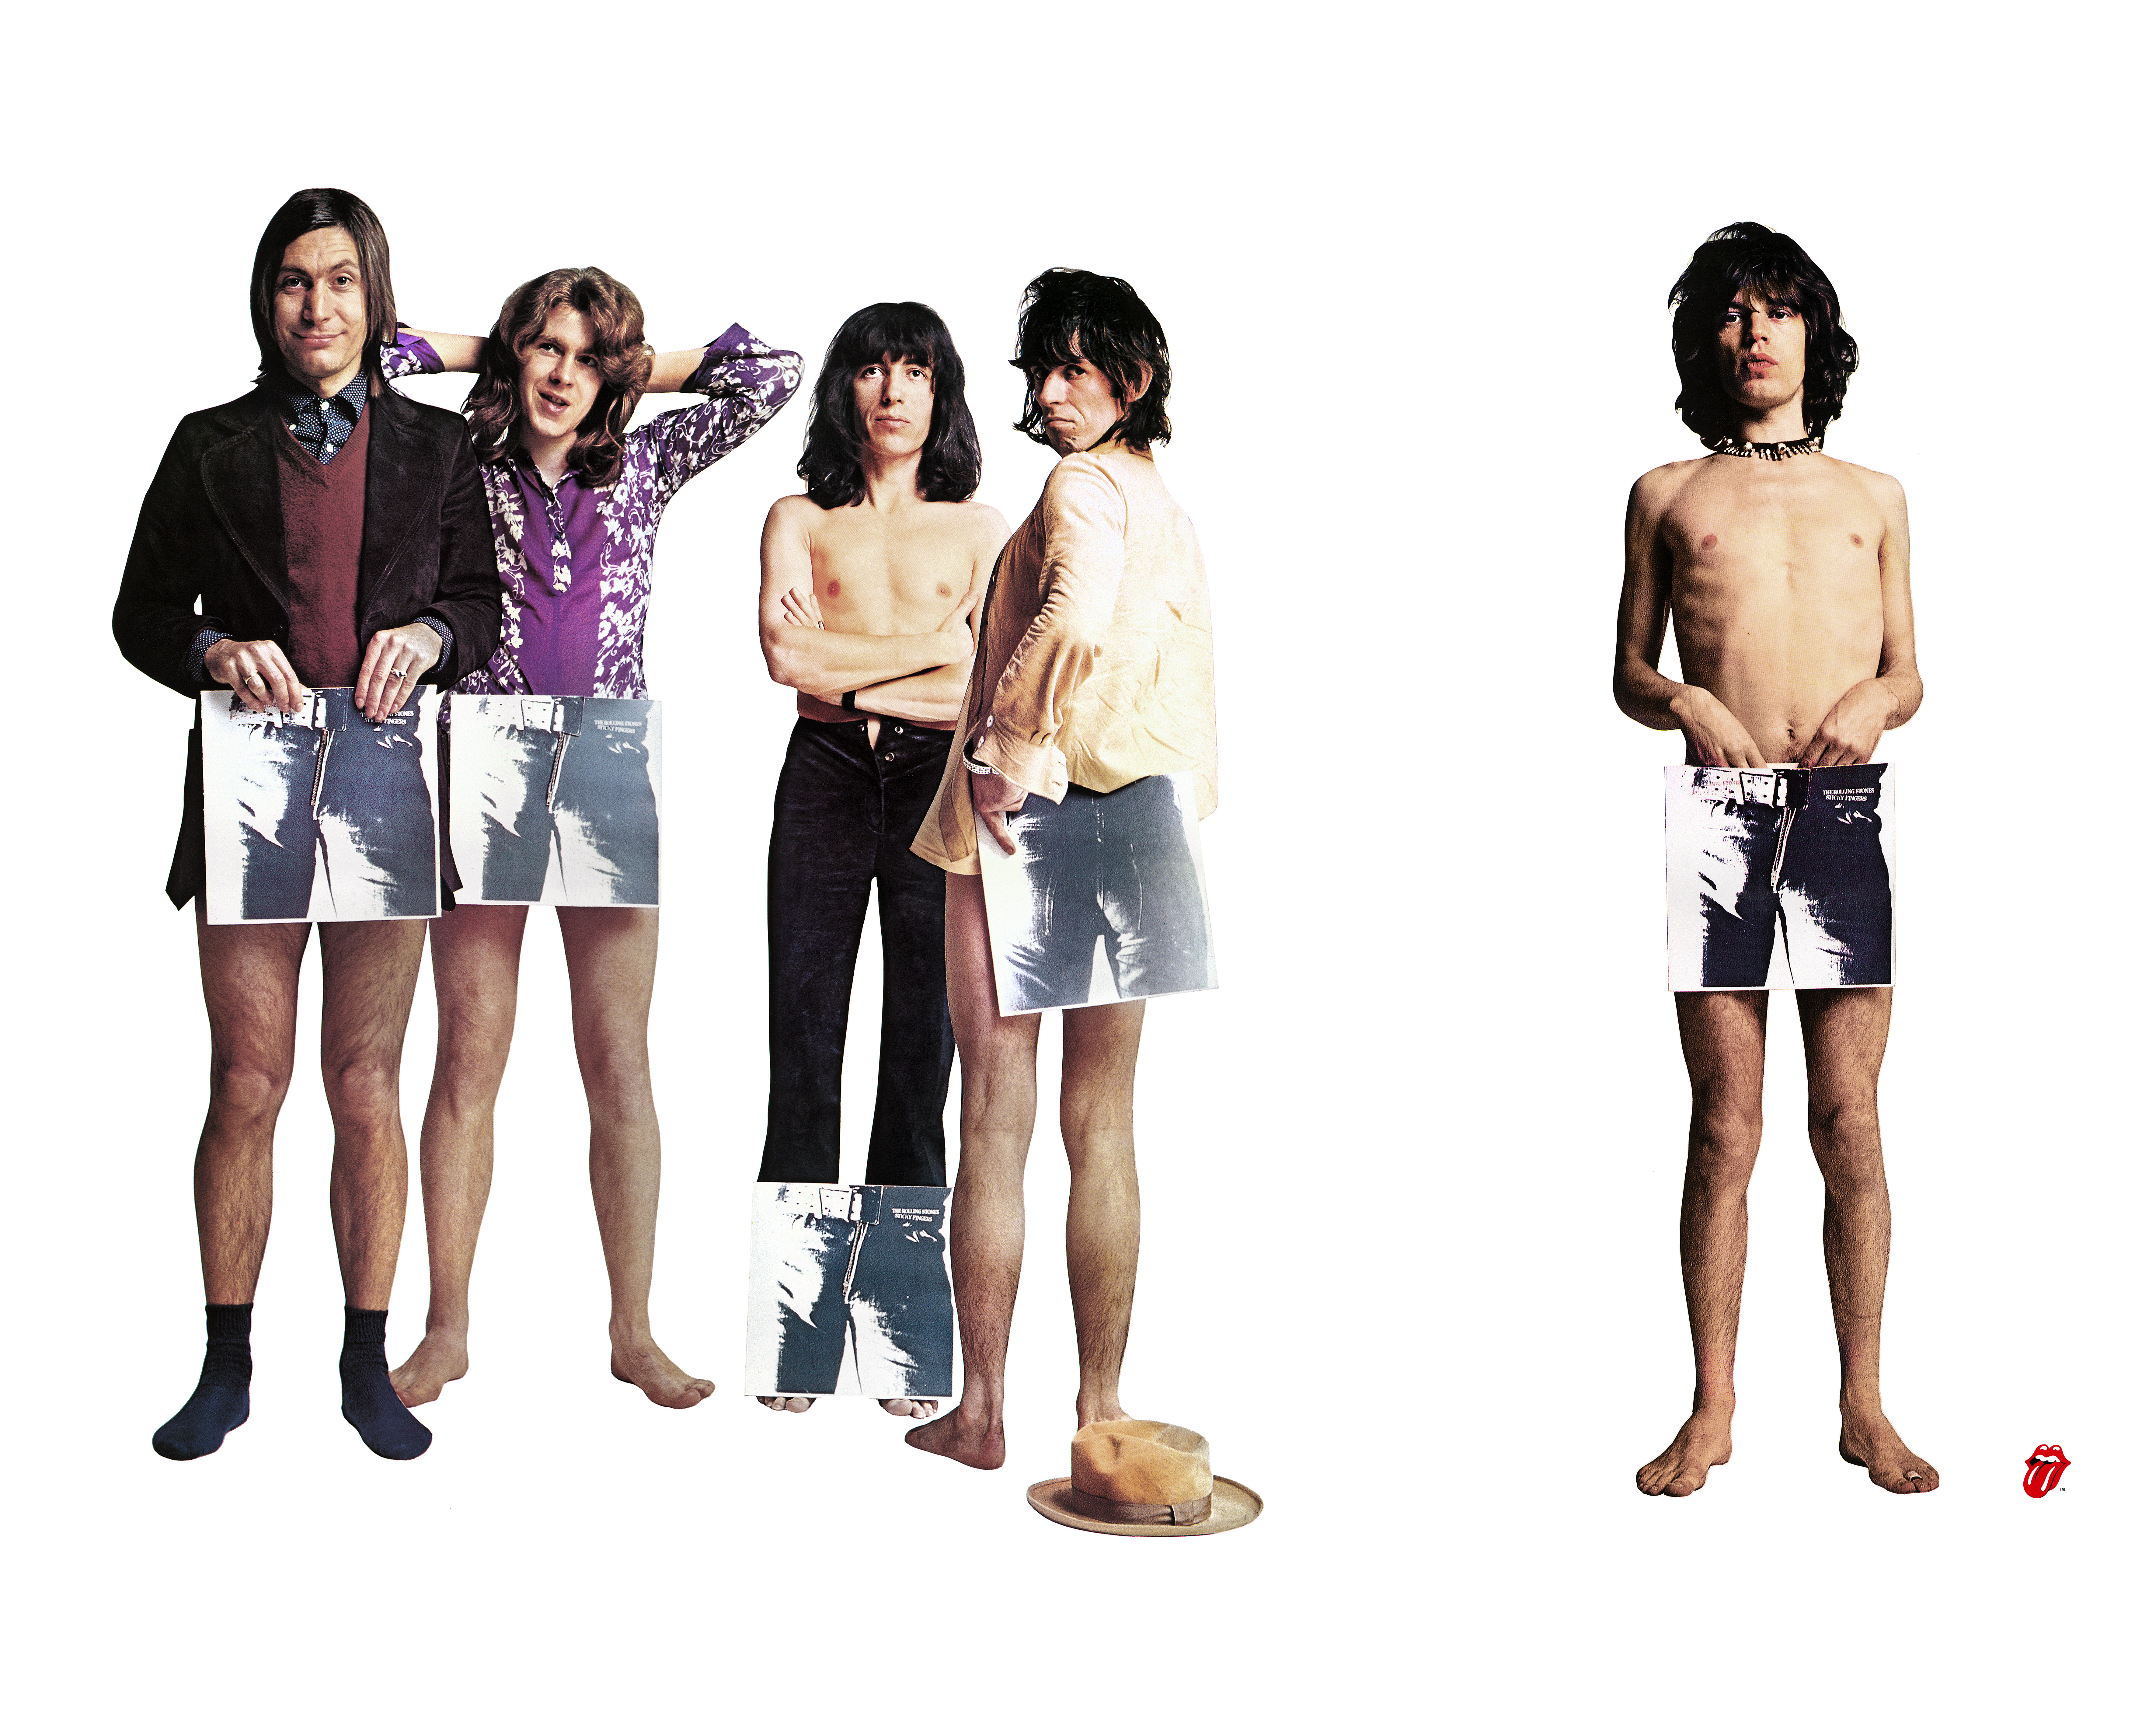 Caption: The Rolling Stones: Unzipped